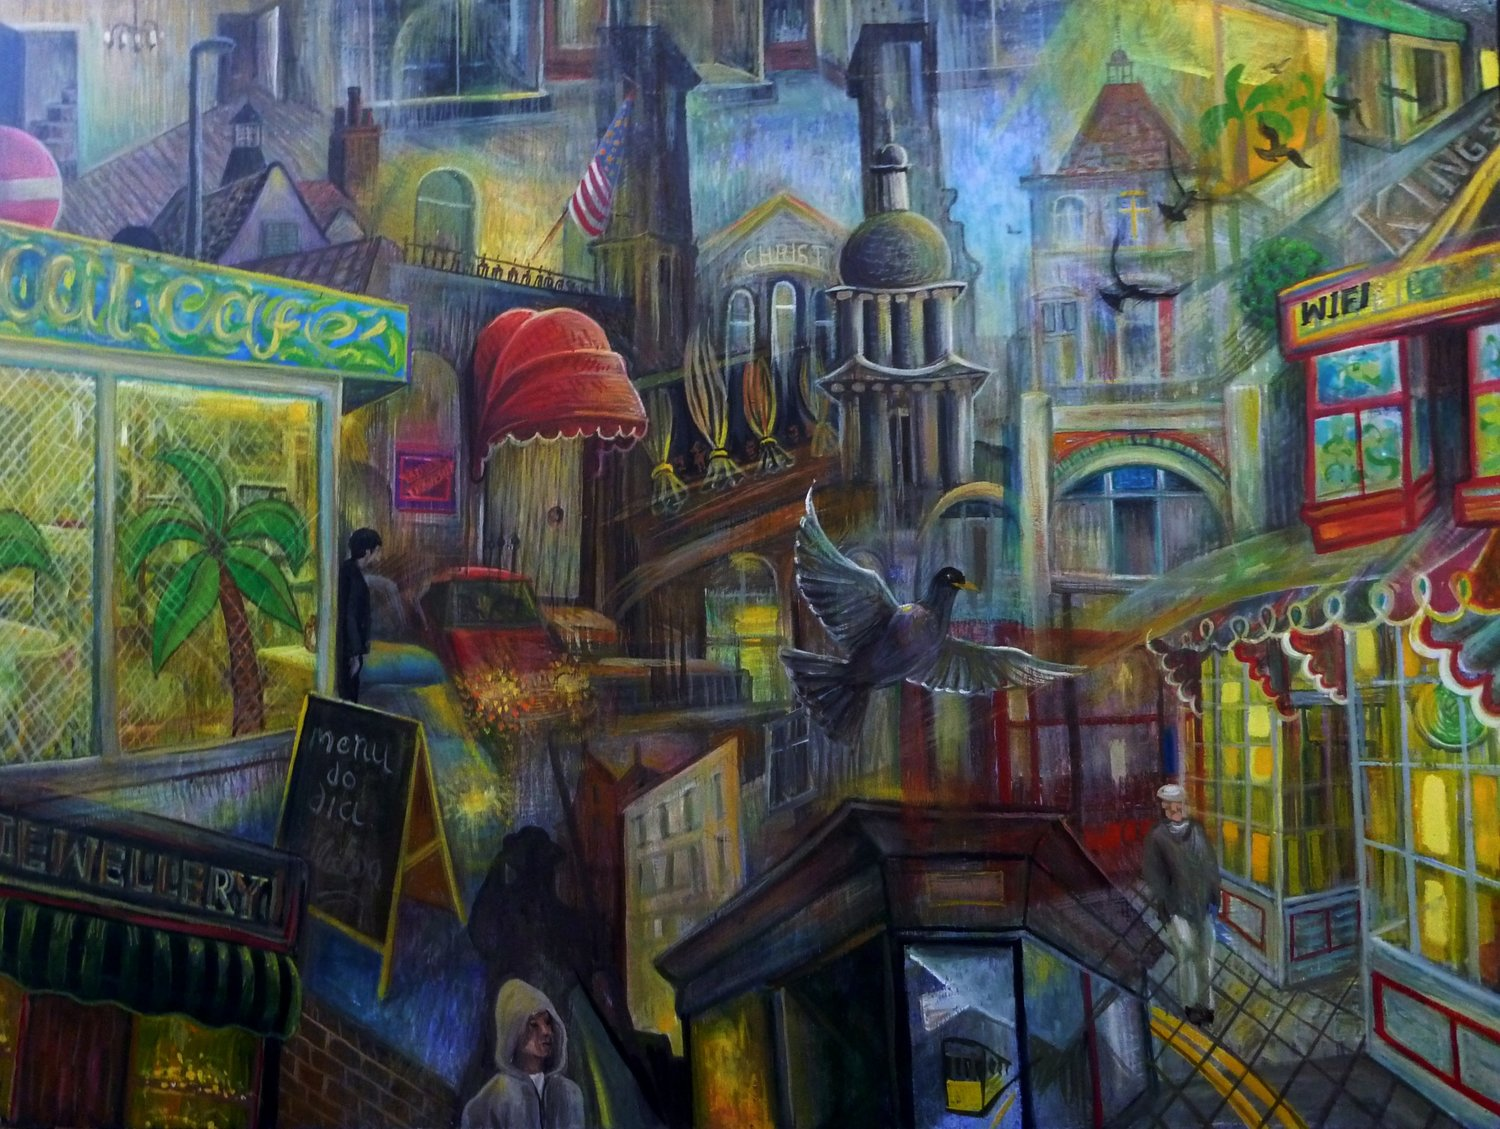 'Walking through the street the other day', Peter Rodulfo, Oil on wood, 92 x 122 cm